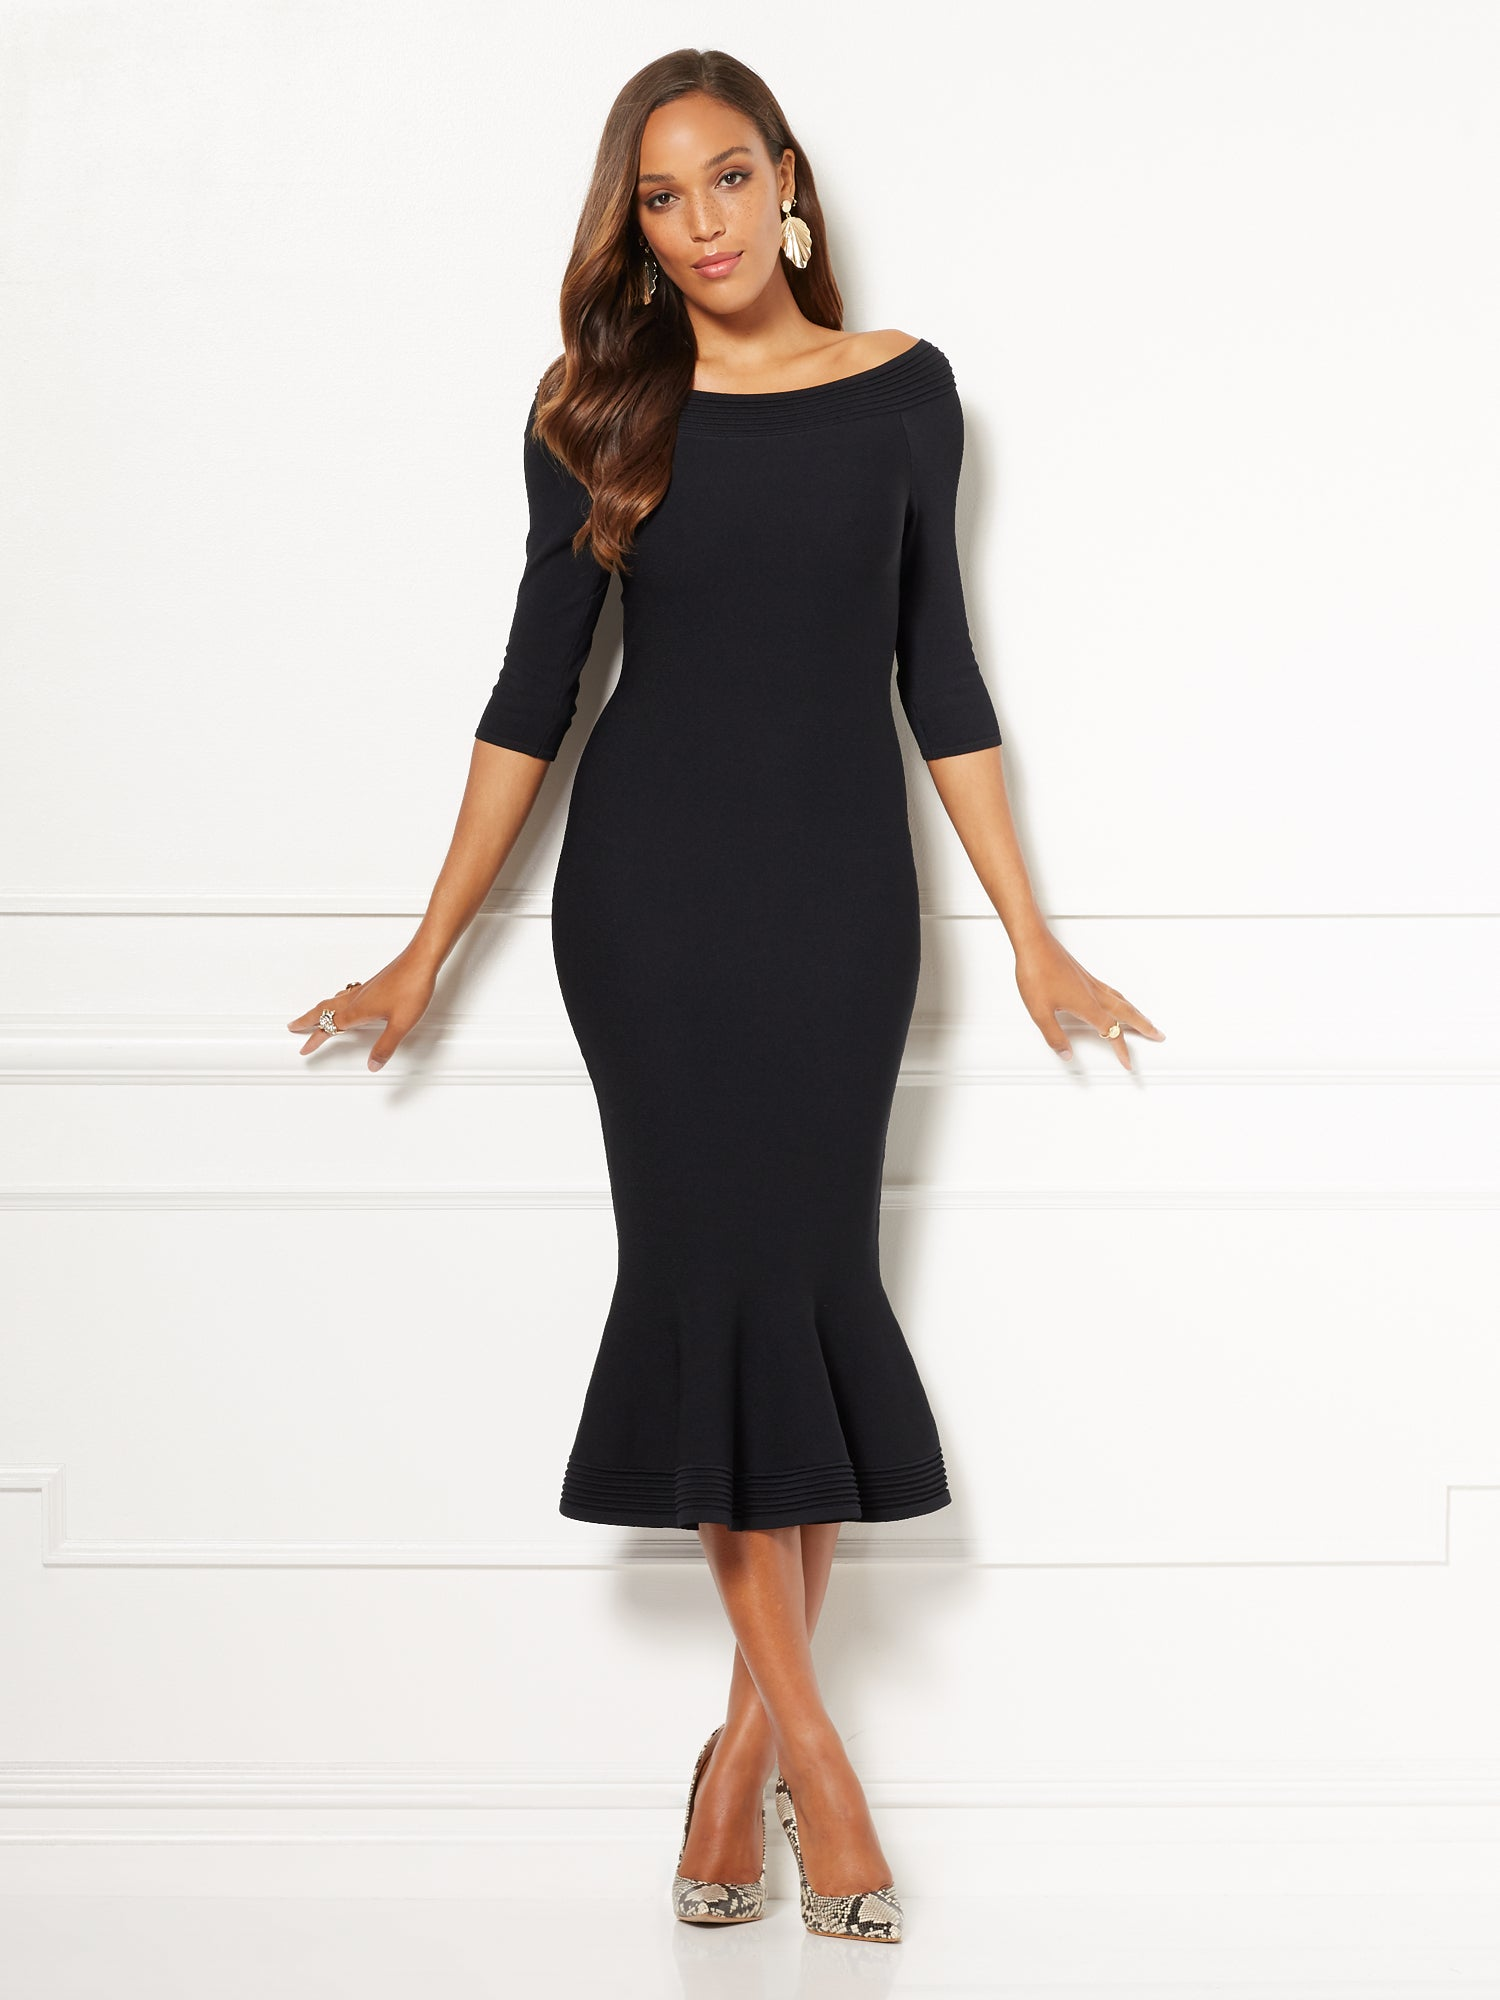 65237e005e9 Eva Mendes Collection - Melinda Sweater Dress in Black